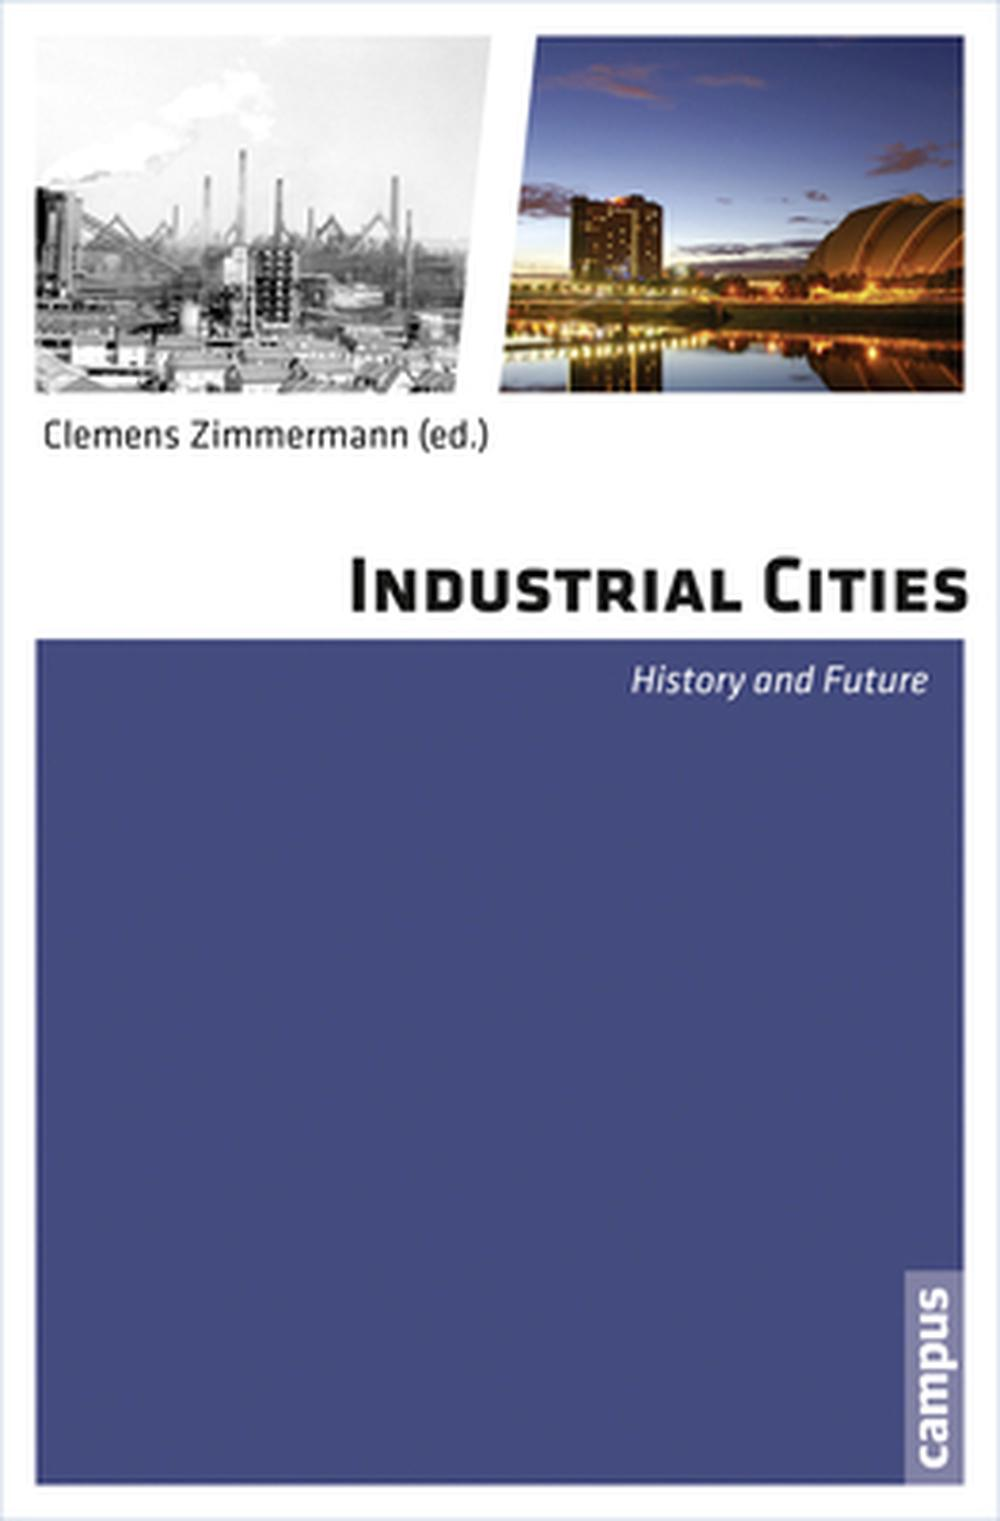 Industrial Cities: History and Future by Clemens Zimmermann (English) Hardcover